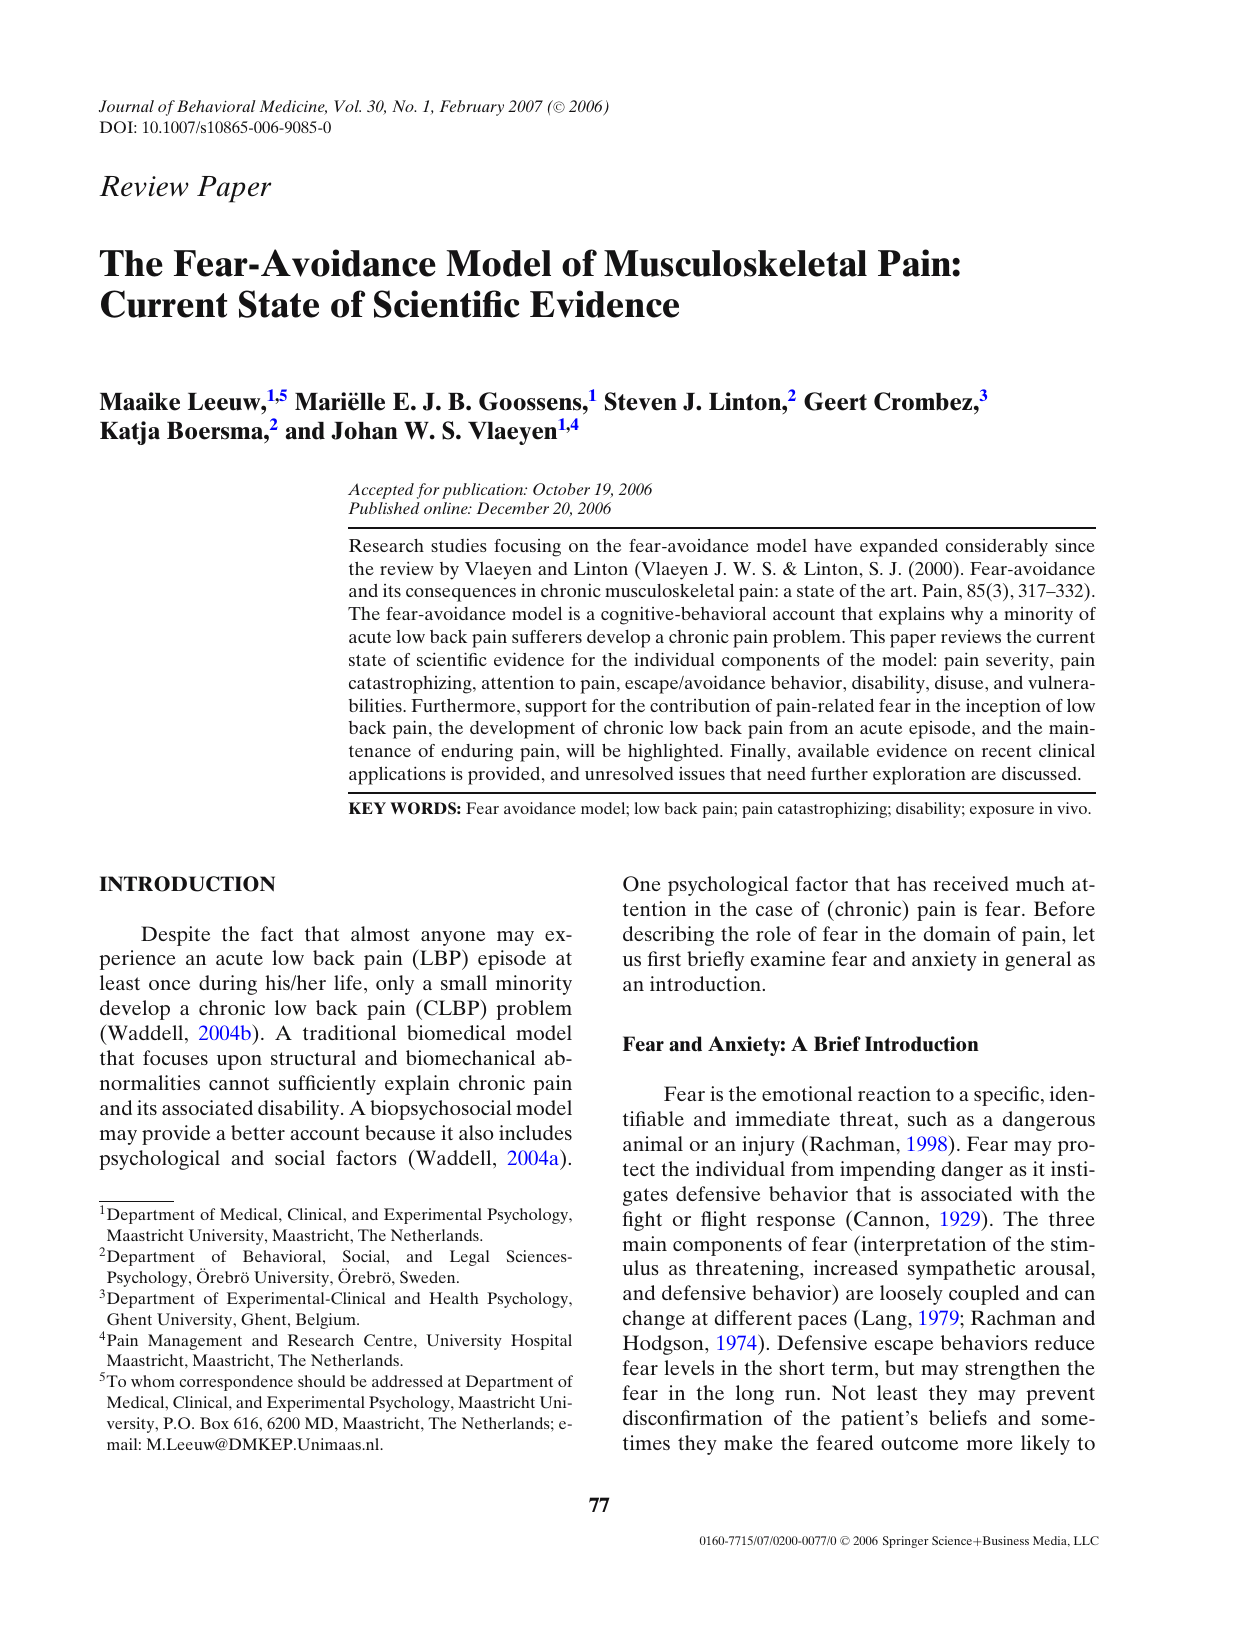 The Current State Of Scientific >> The Fear Avoidance Model Of Musculoskeletal Pain Current